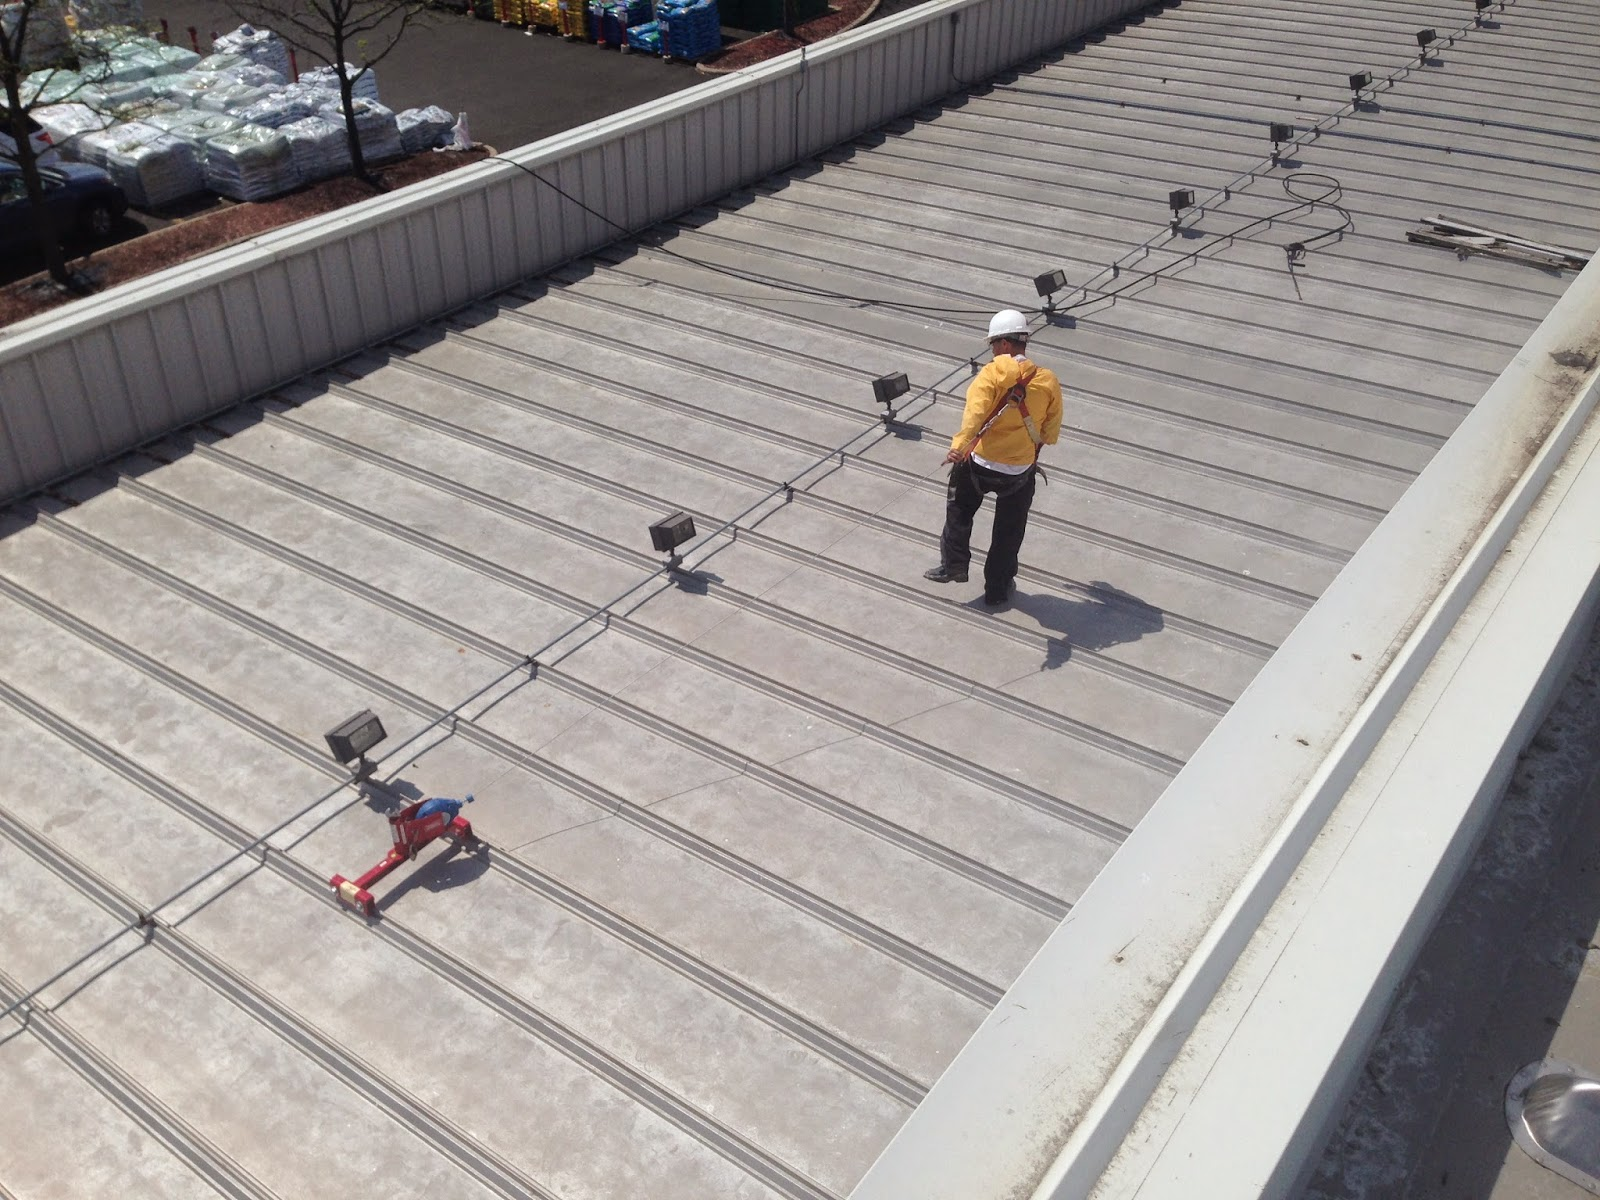 Nelson Is Using A Standing Seam Roof Anchor As His 5,000 Lb Fall Protection  Anchorage Point Along With A 30u0027 Cable Retractable. Great Job Nelson!